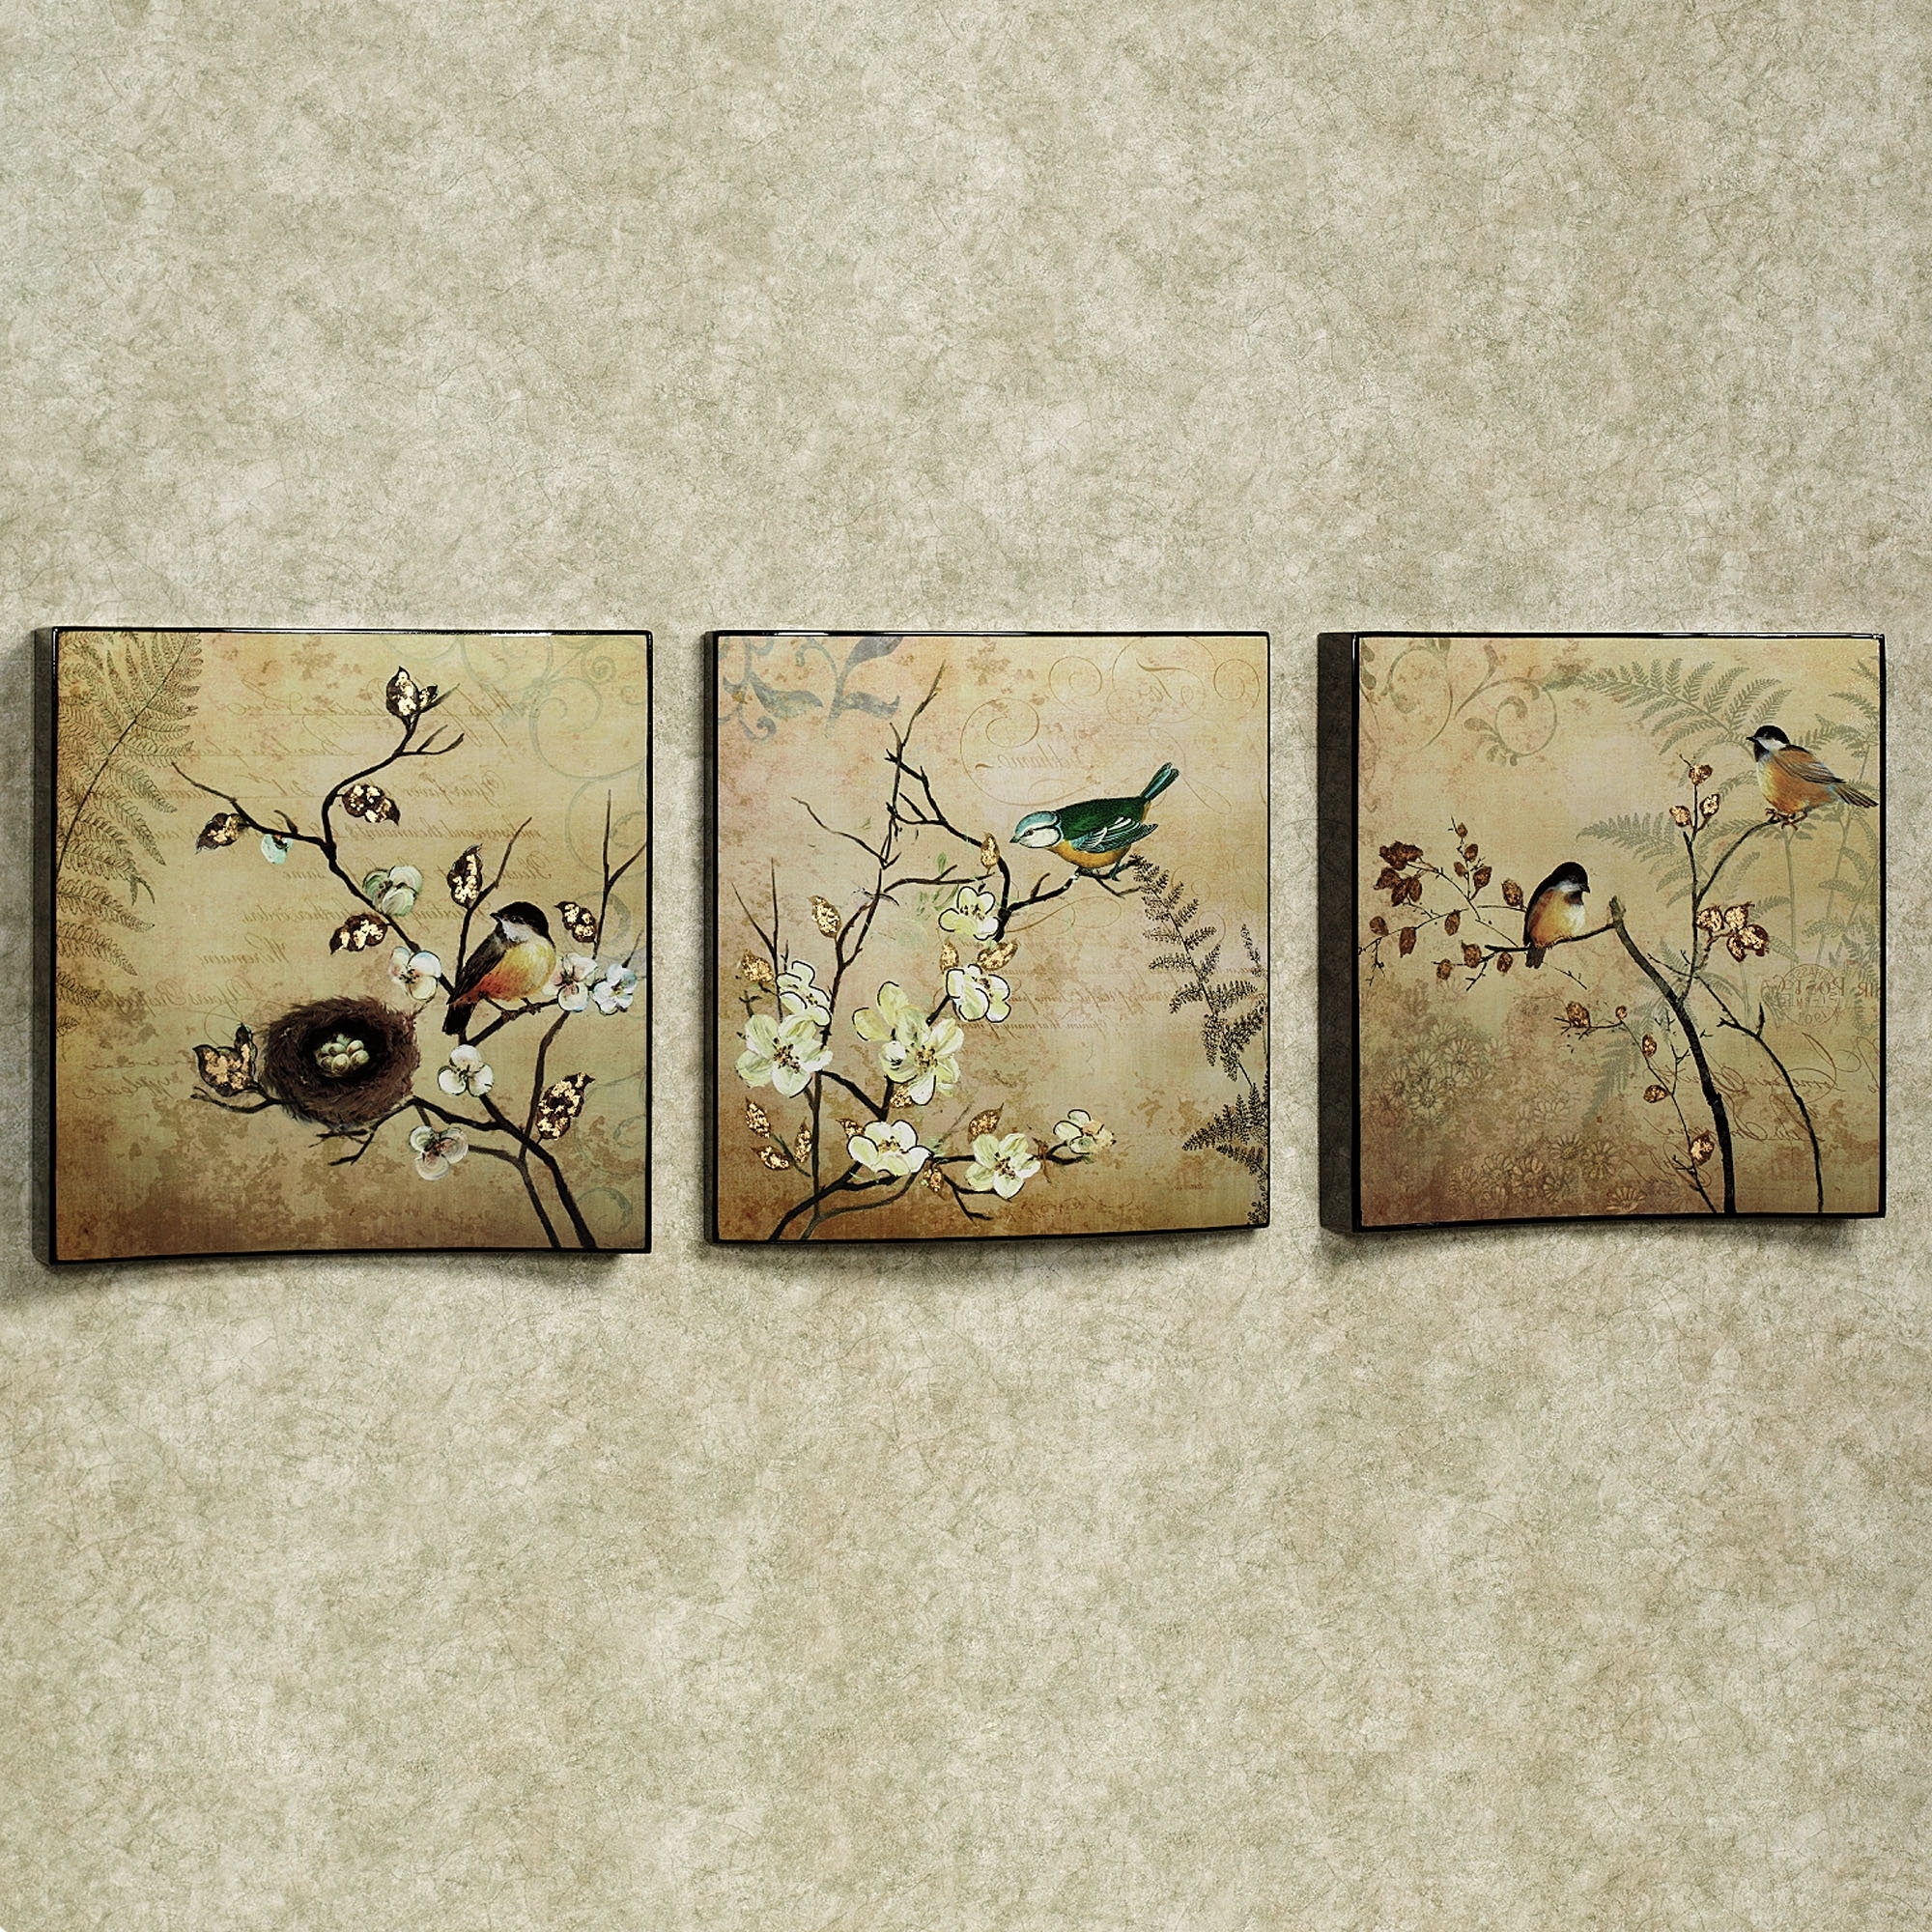 Vintage Style Wall Art Regarding Well Known Wall Art Ideas Design : Vintage Style Wall Art Set Of Three Nature (View 2 of 15)